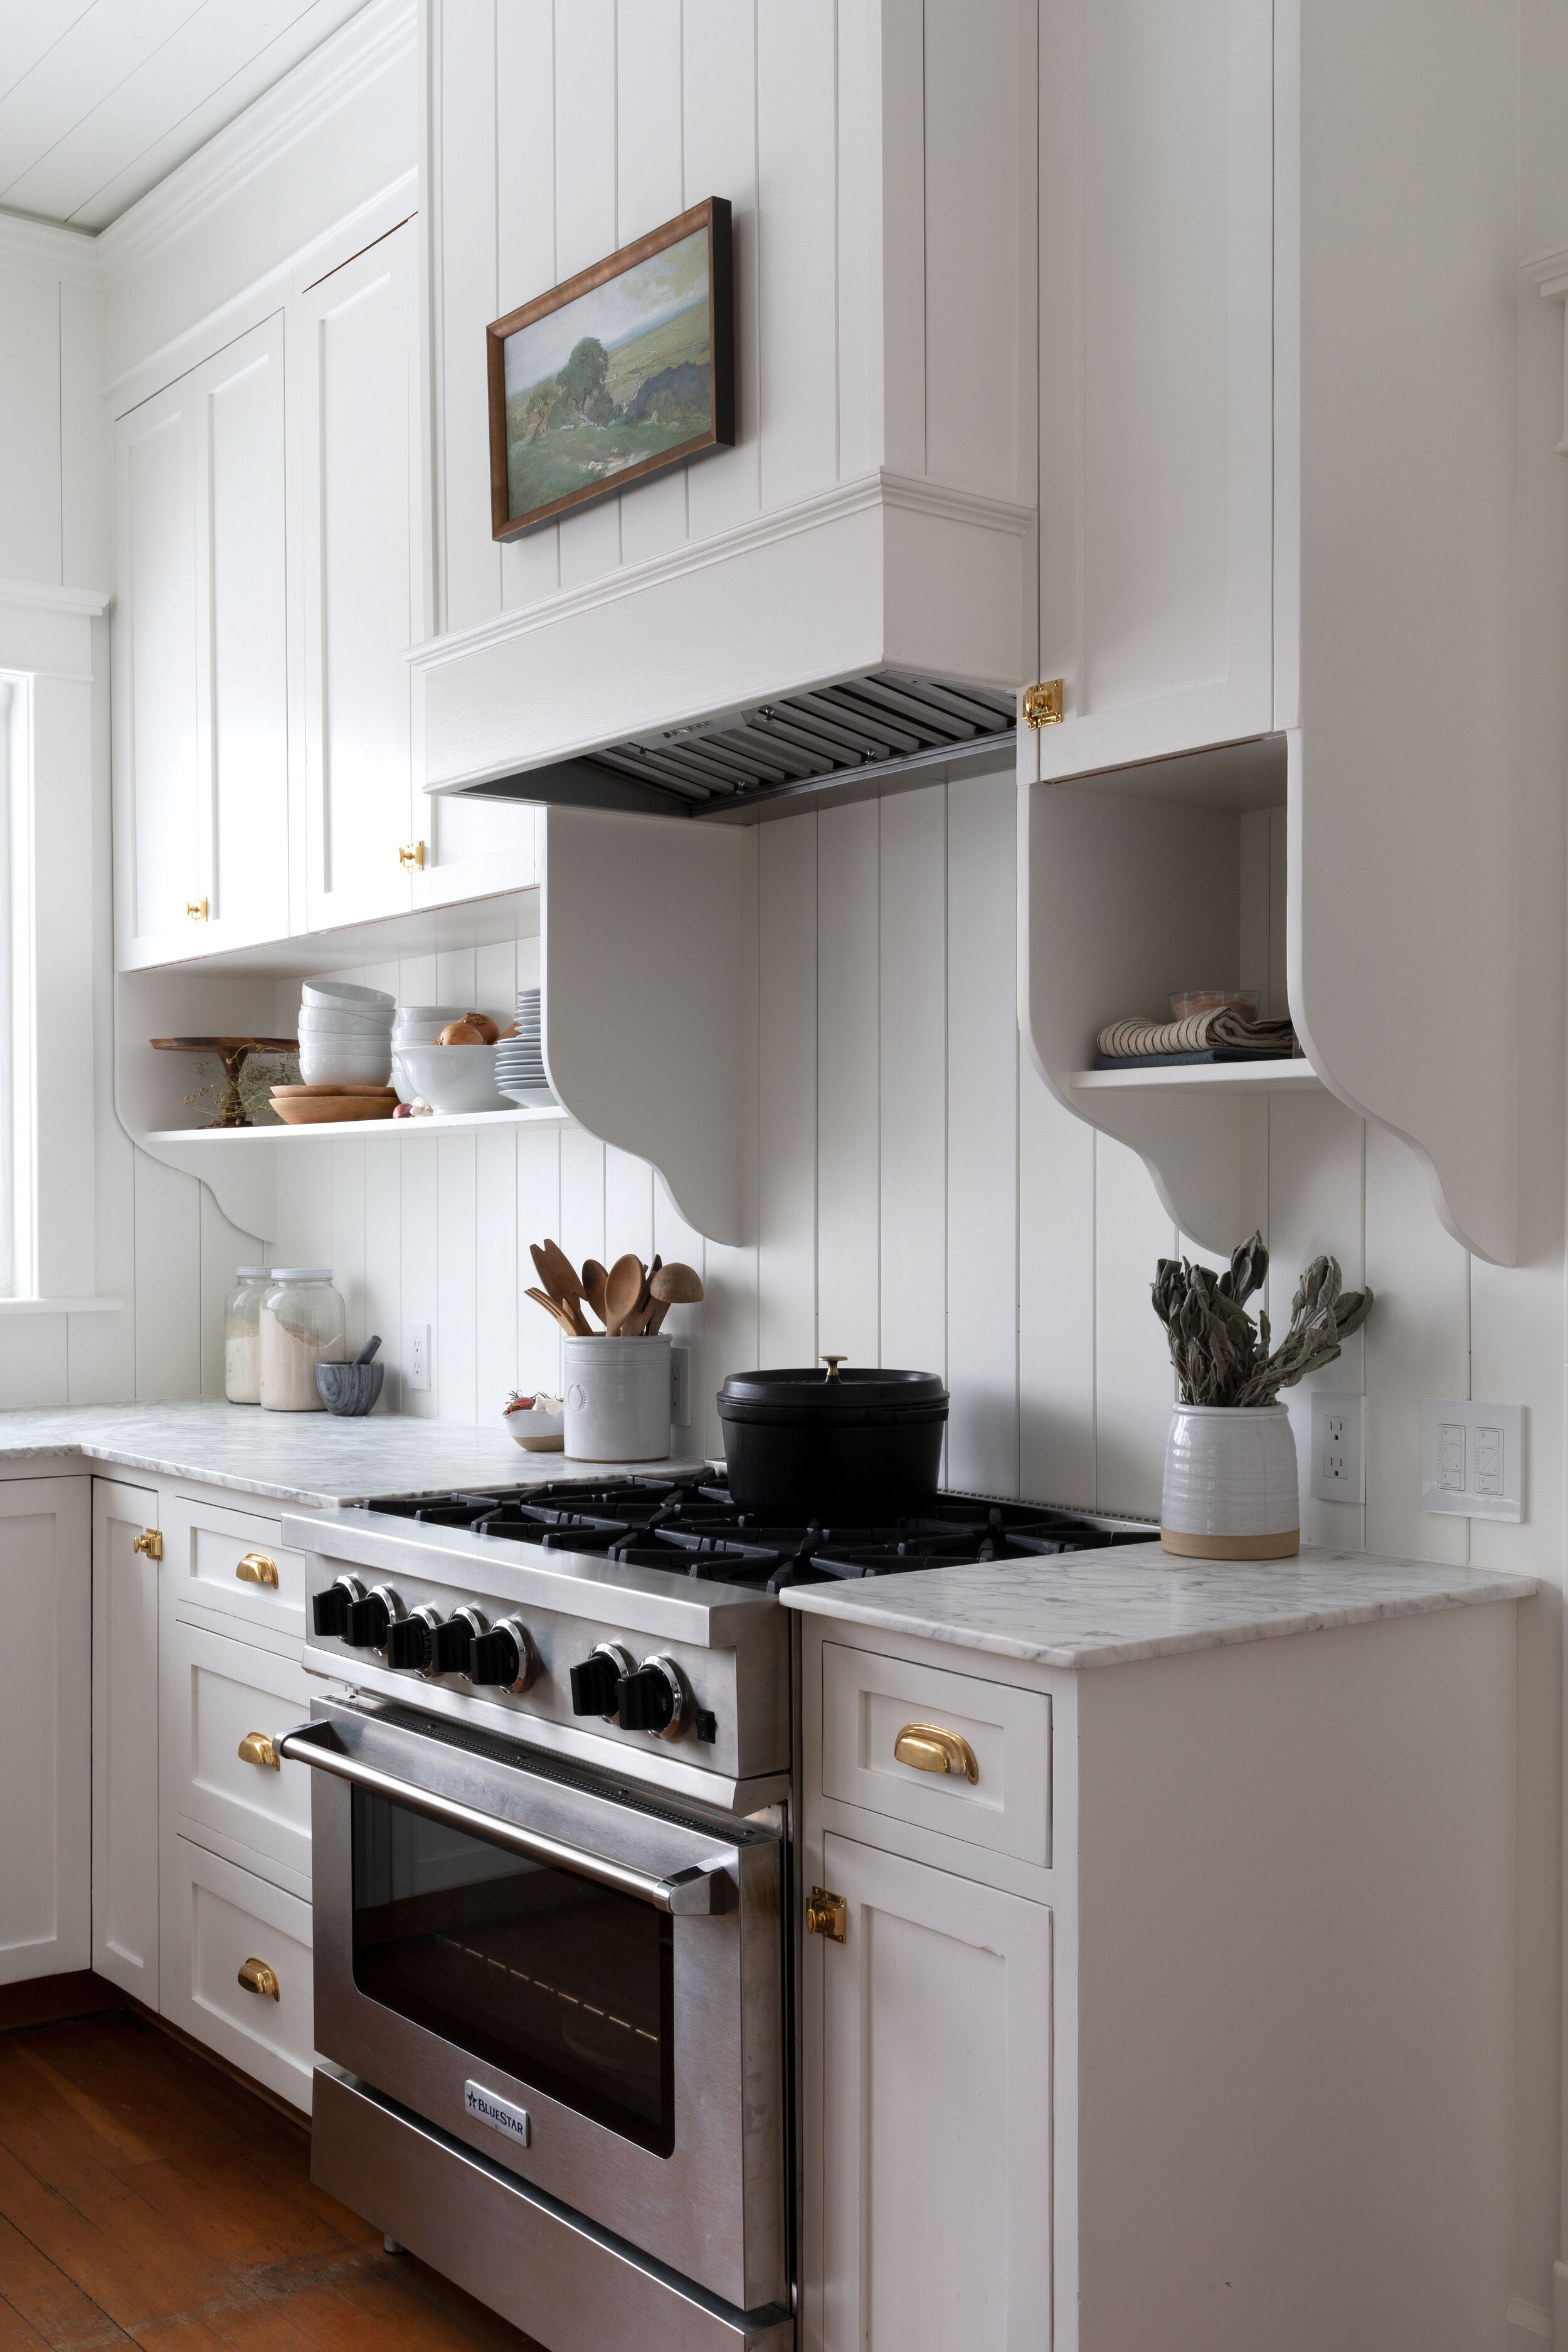 The Grit and Polish - Farmhouse Country Kitchen Reveal 3.0 8 web.jpg